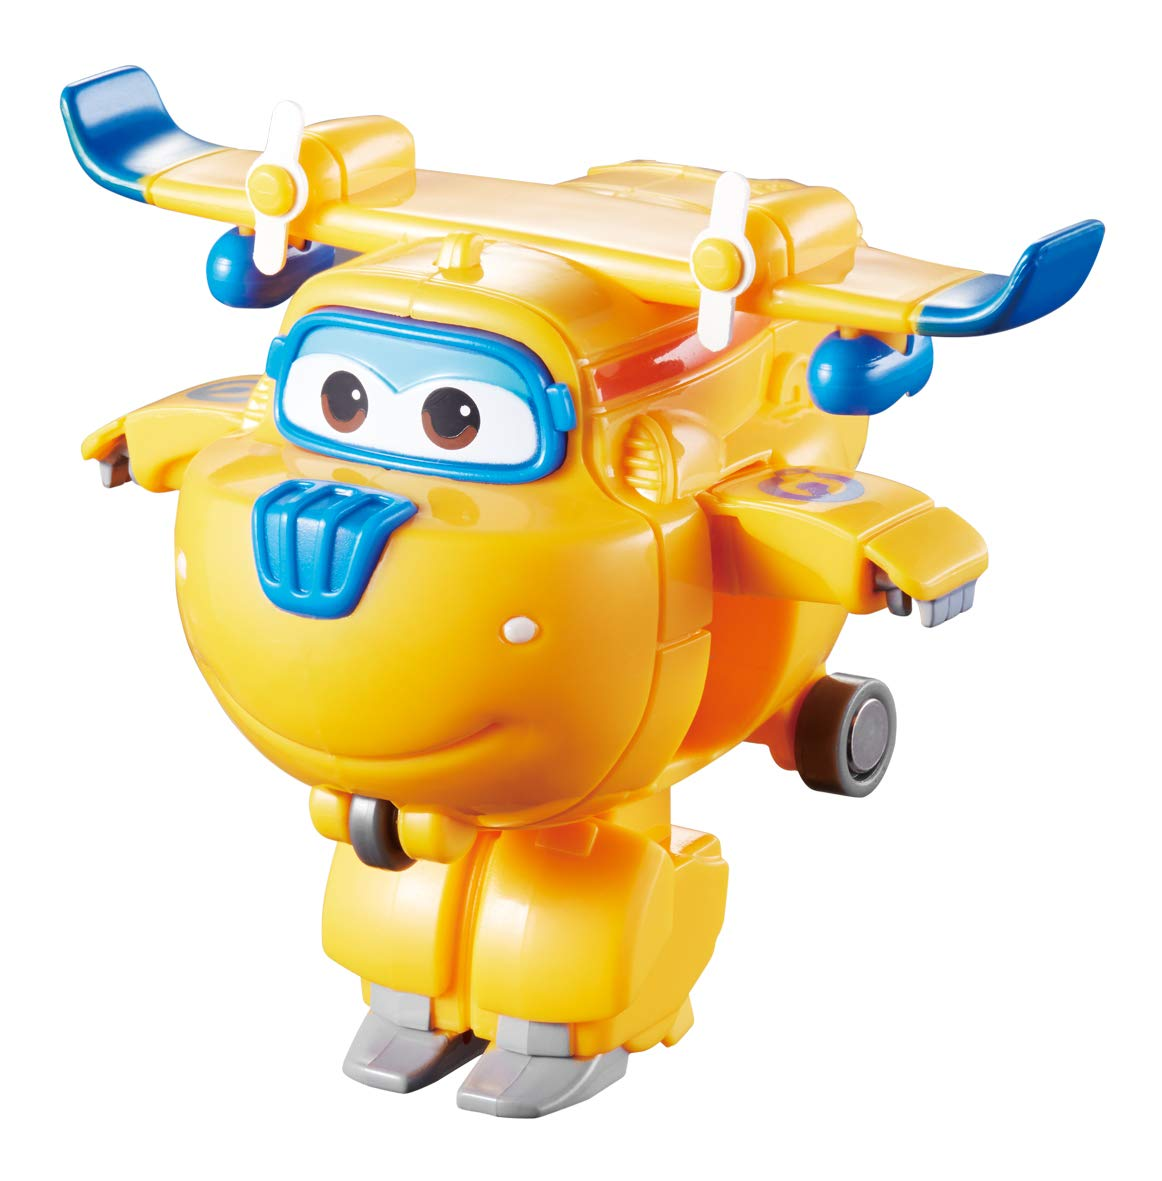 Super Wings US720040D Transforming Toy Figures, Poppa Wheel, Dizzy, Jett, & Donnie, 2'' Scale by Super Wings